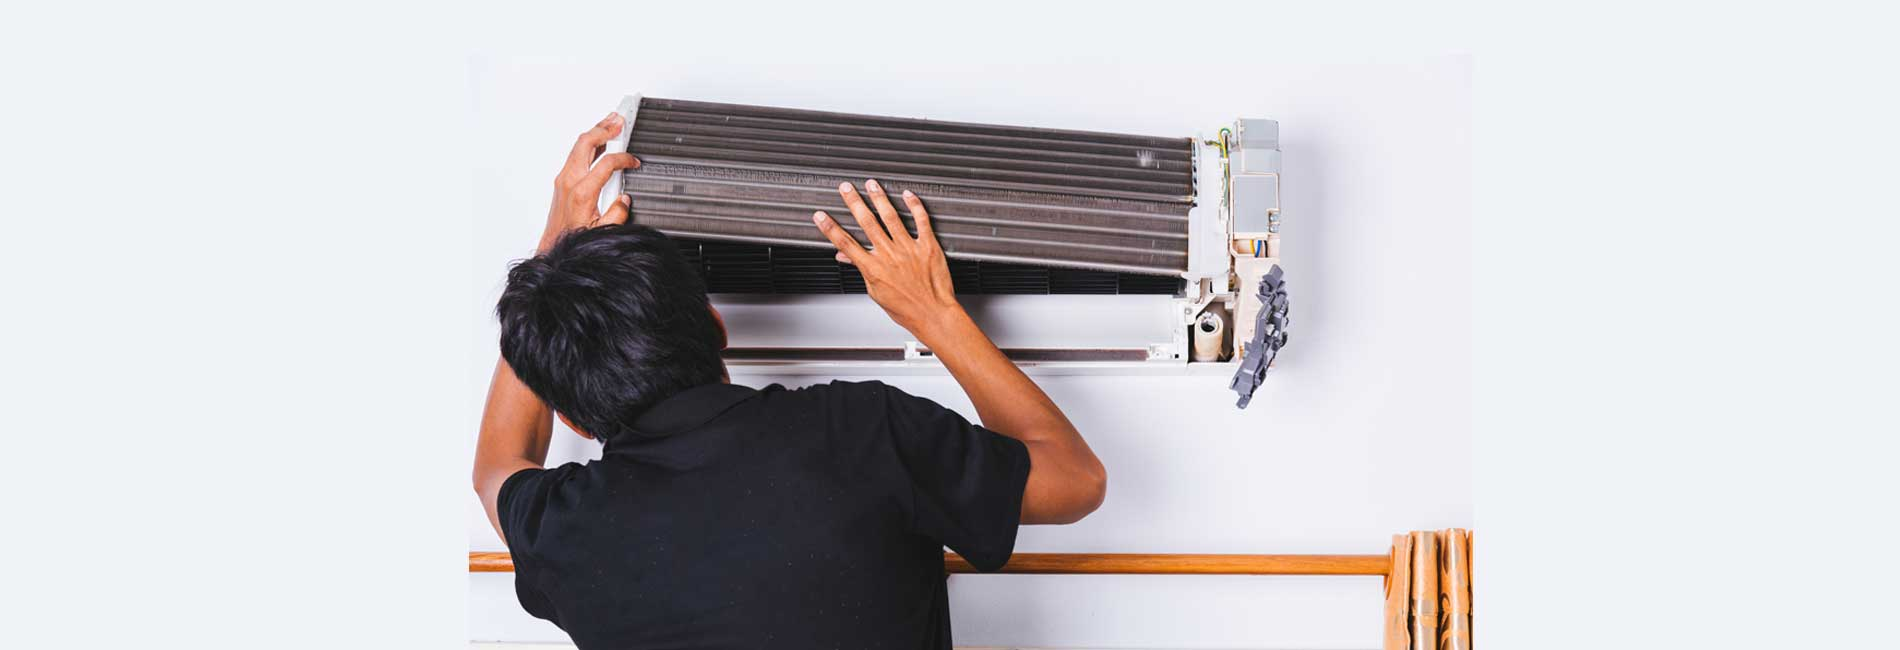 IFB Split AC Uninstallation in Peravallur